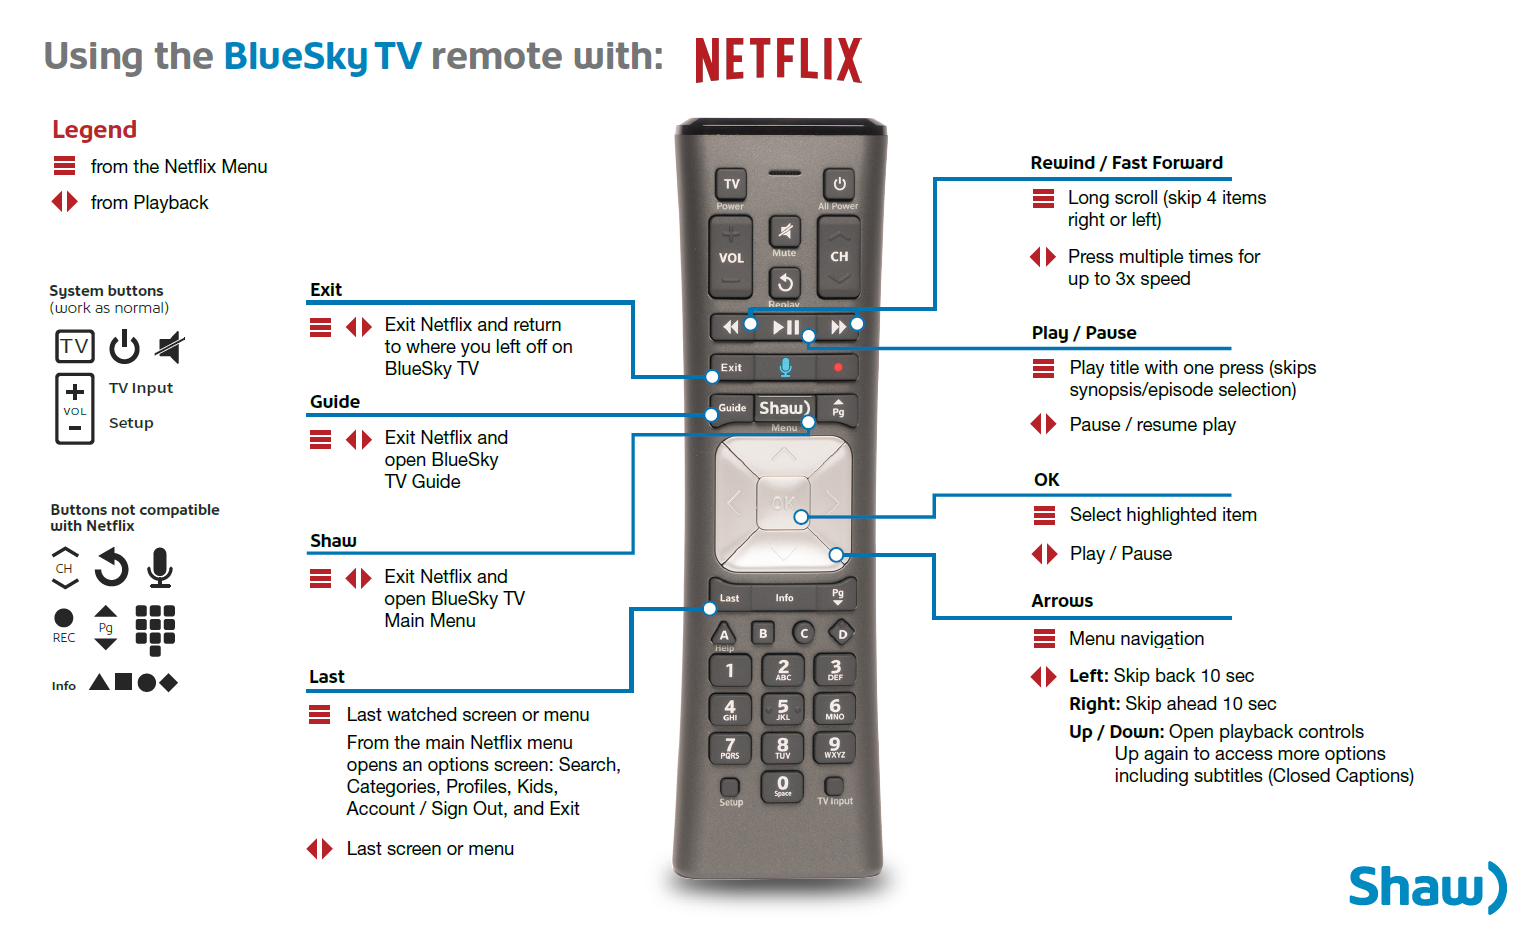 BlueSky TV Voice Remote Control Guide for using Netflix